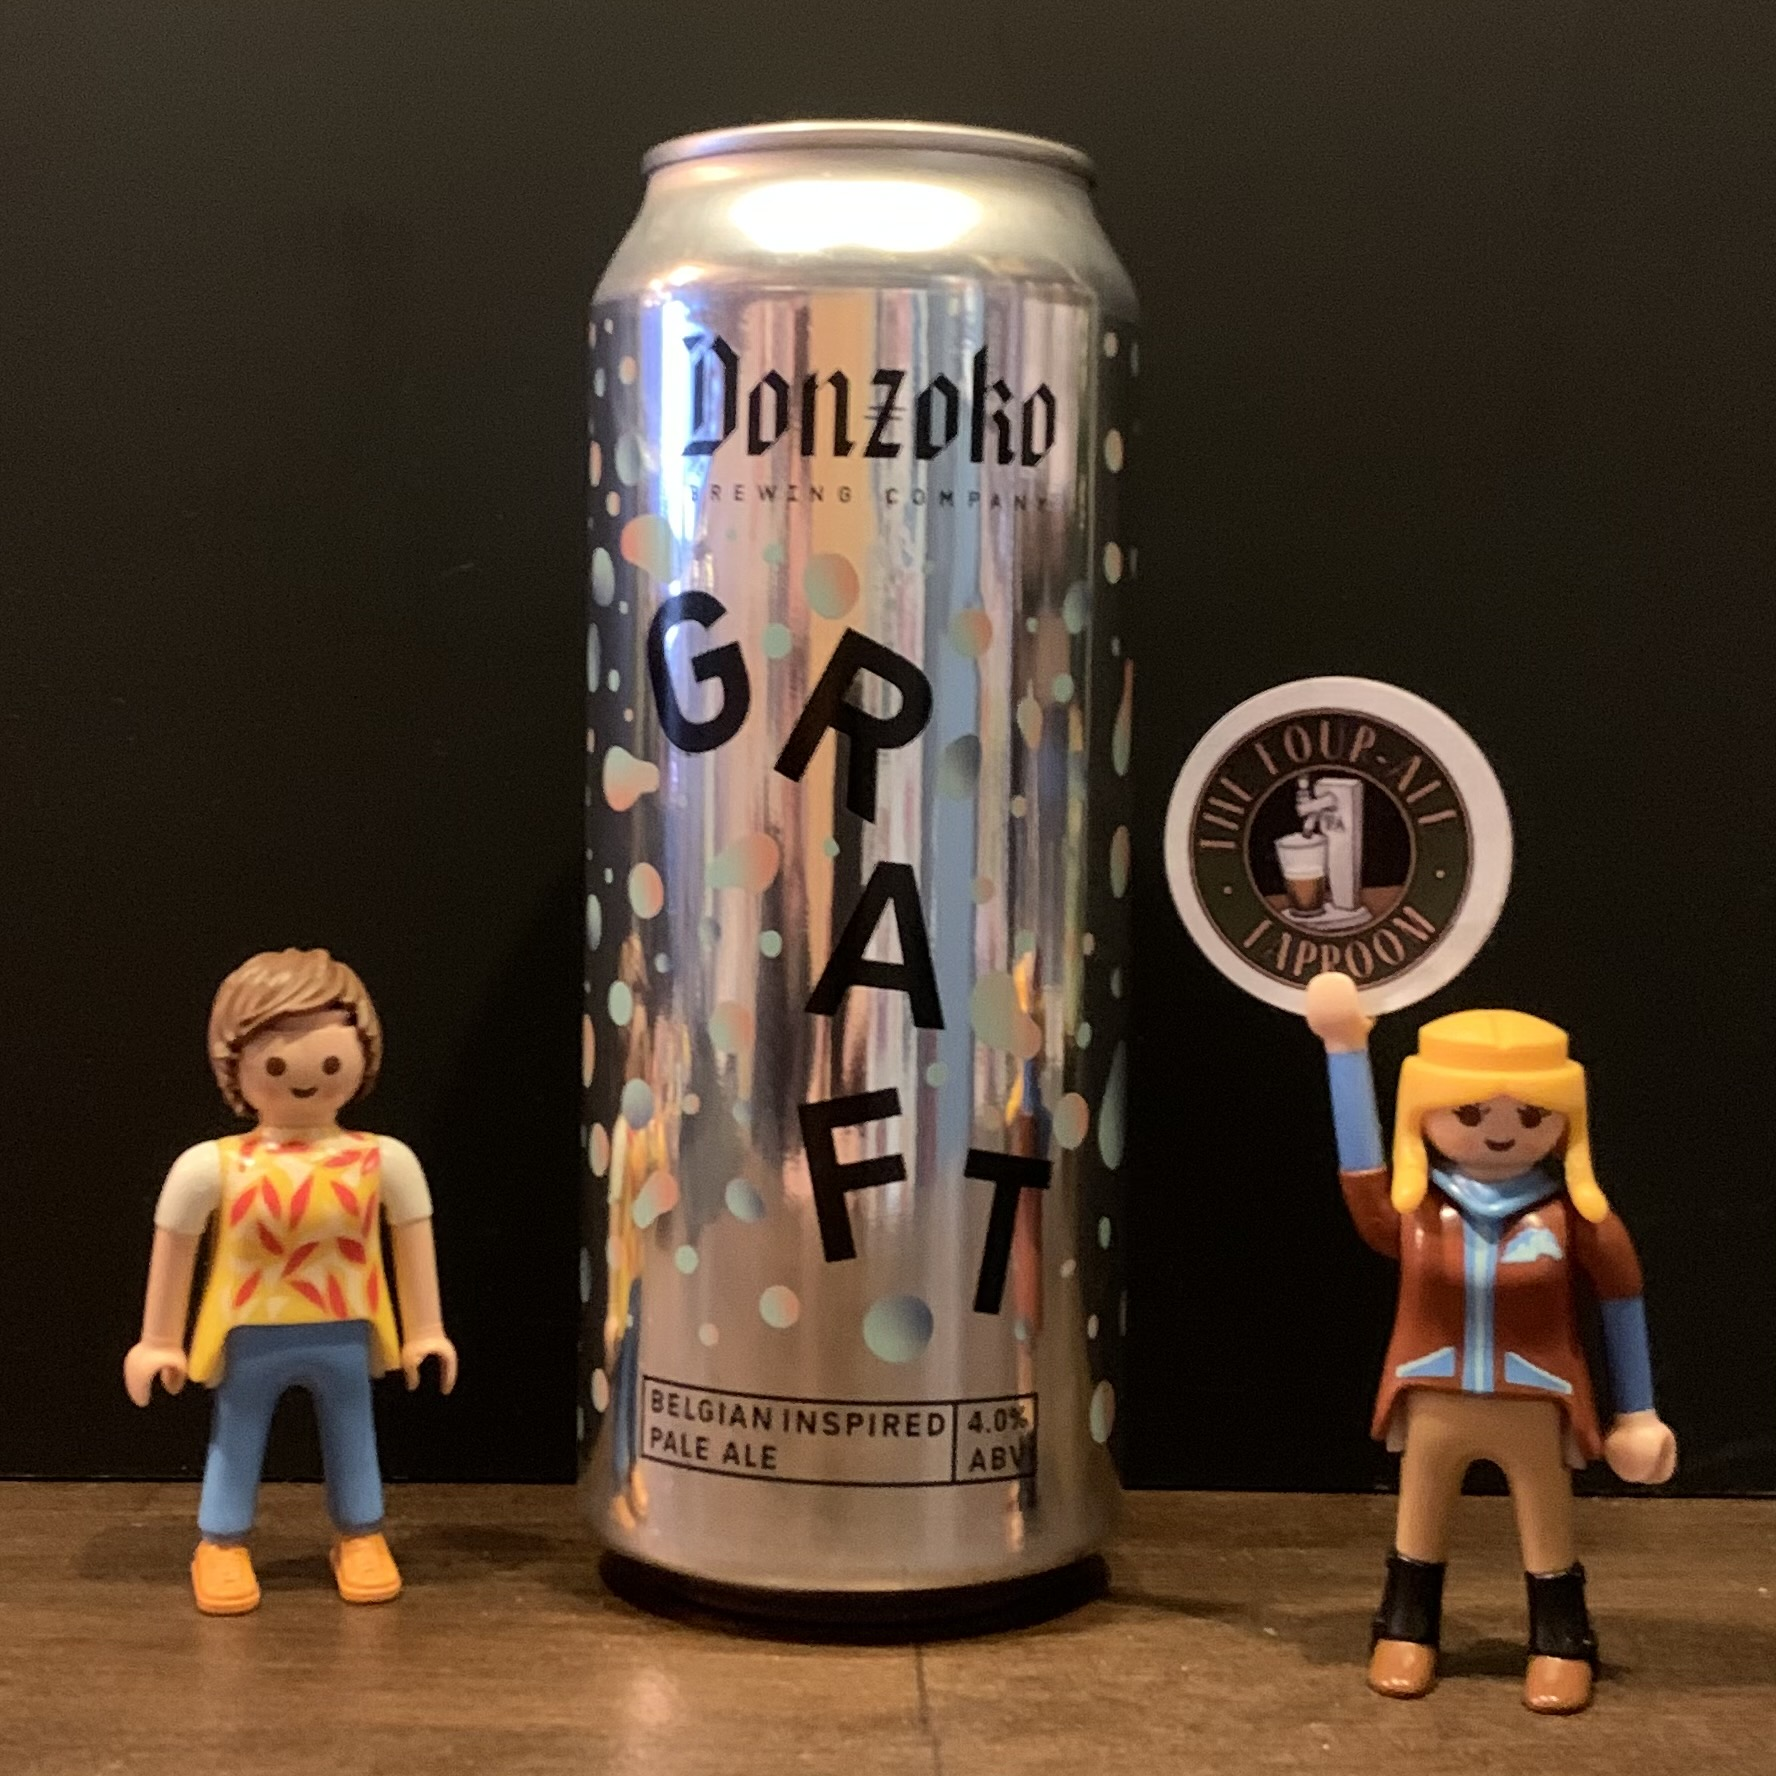 Donzoko Brewing - Graft - Pale Ale - 4%